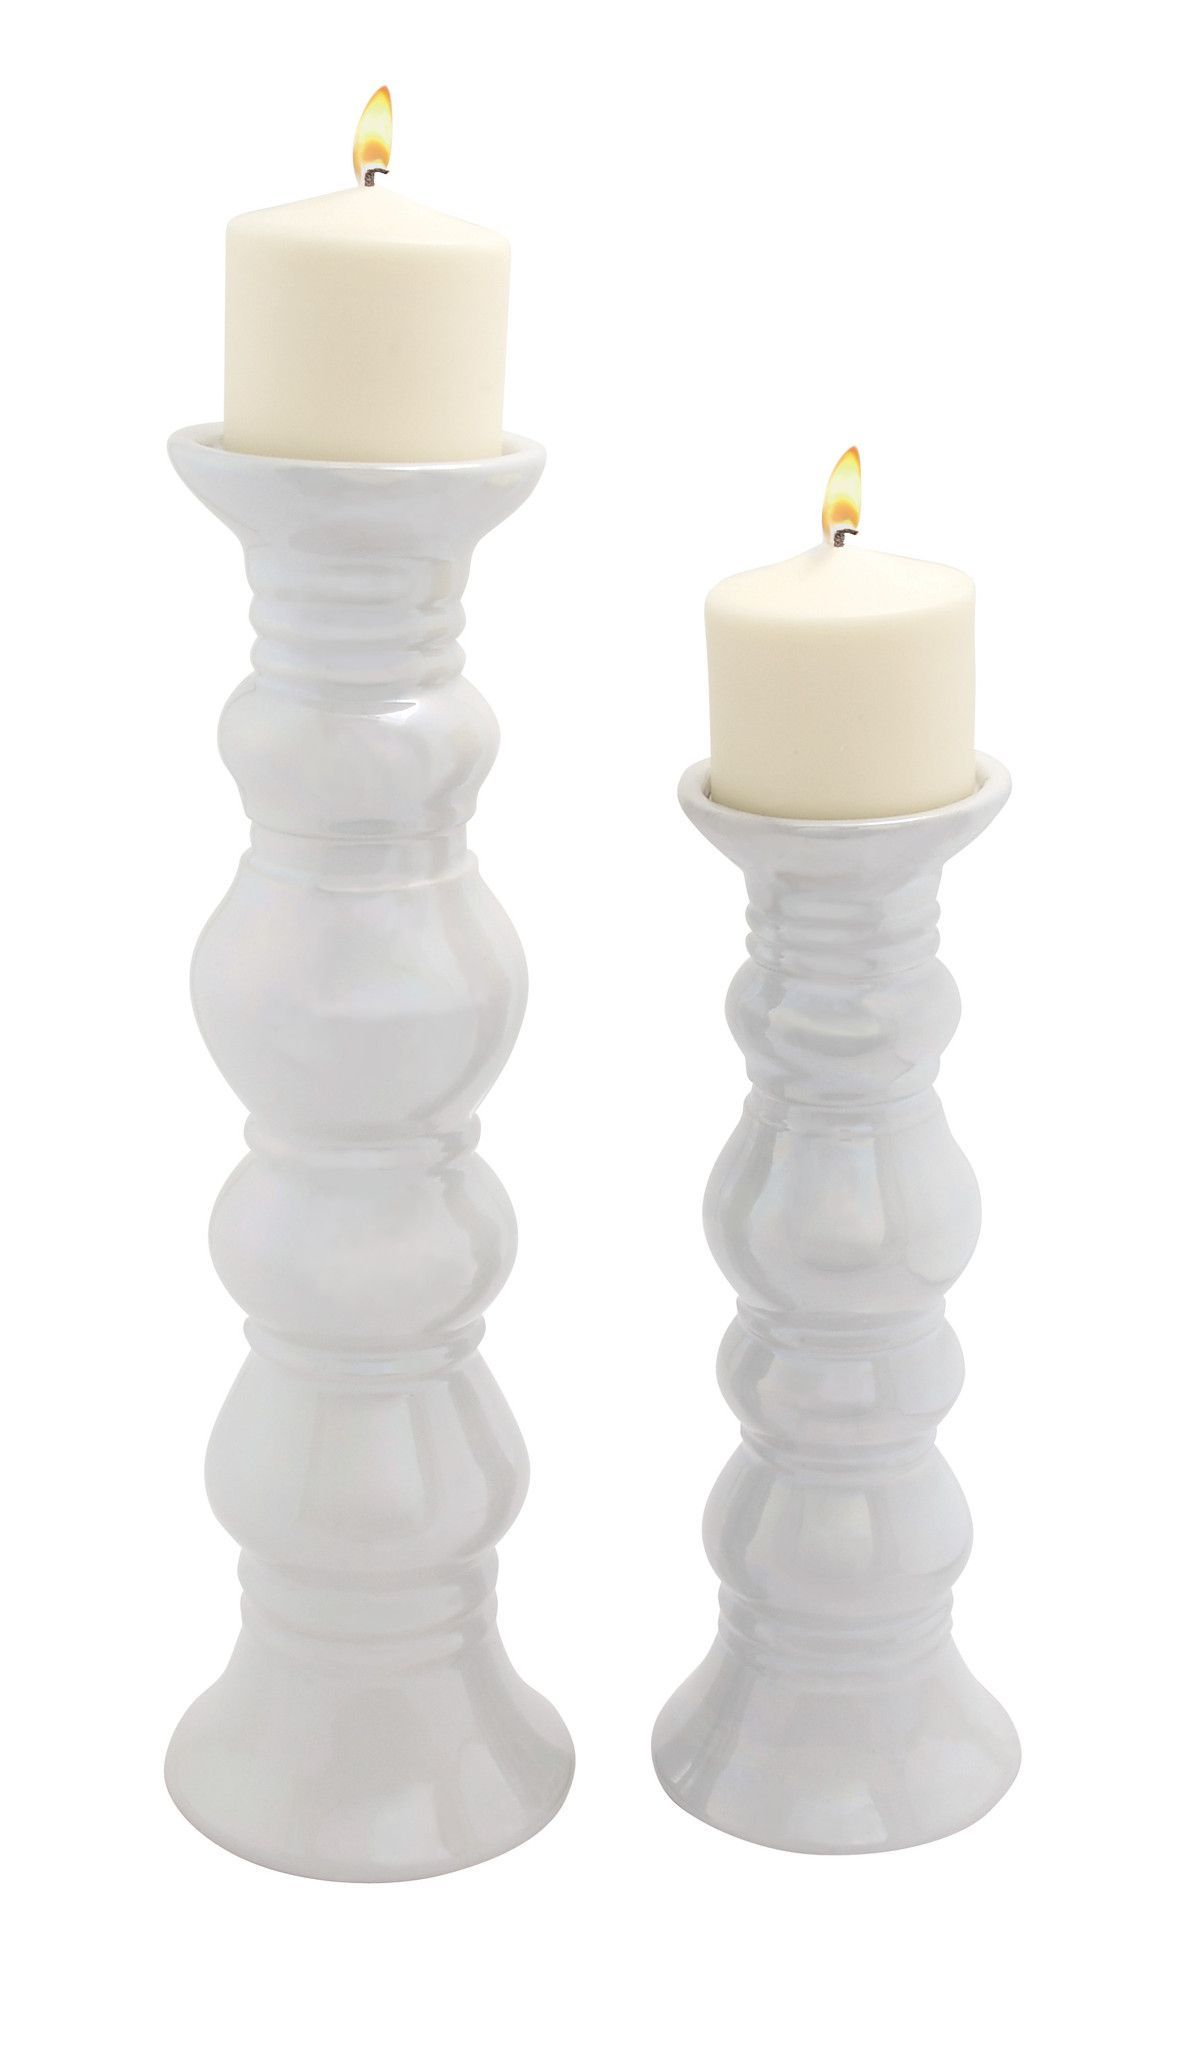 Classy Unique Styled Ceramic Candle Holder Set Of 2